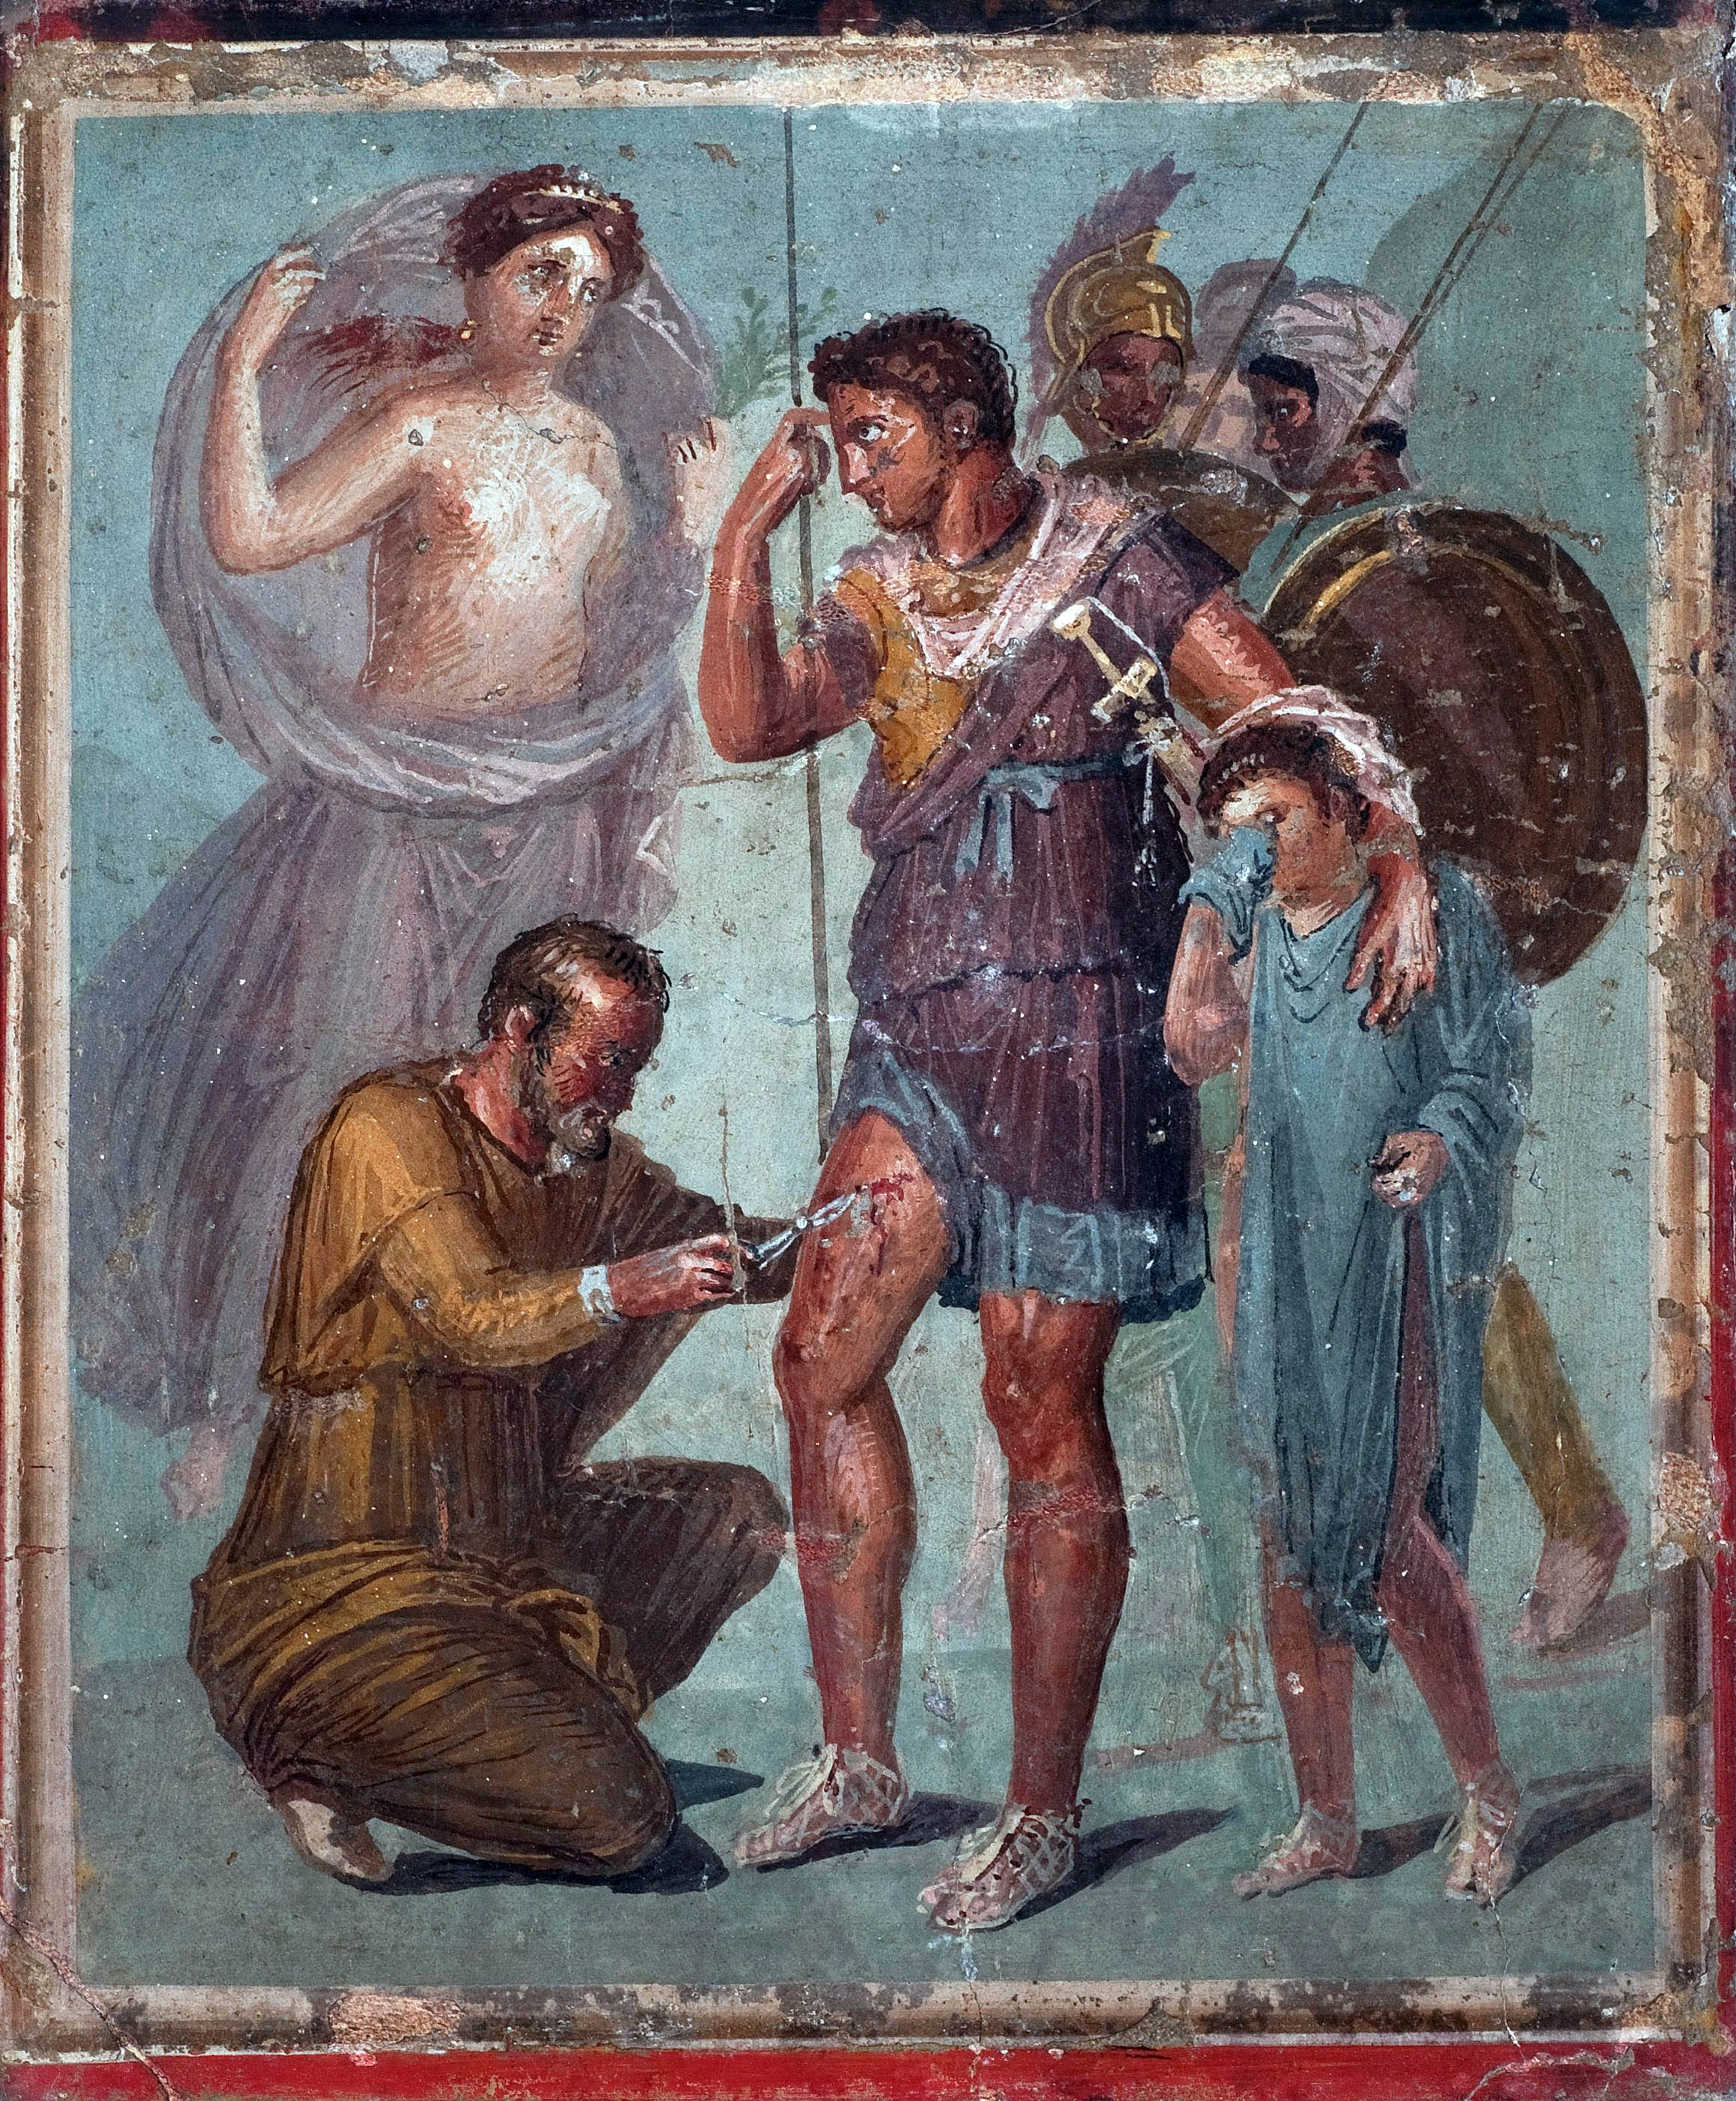 Iapyx removing an arrowhead from the leg of Aeneas